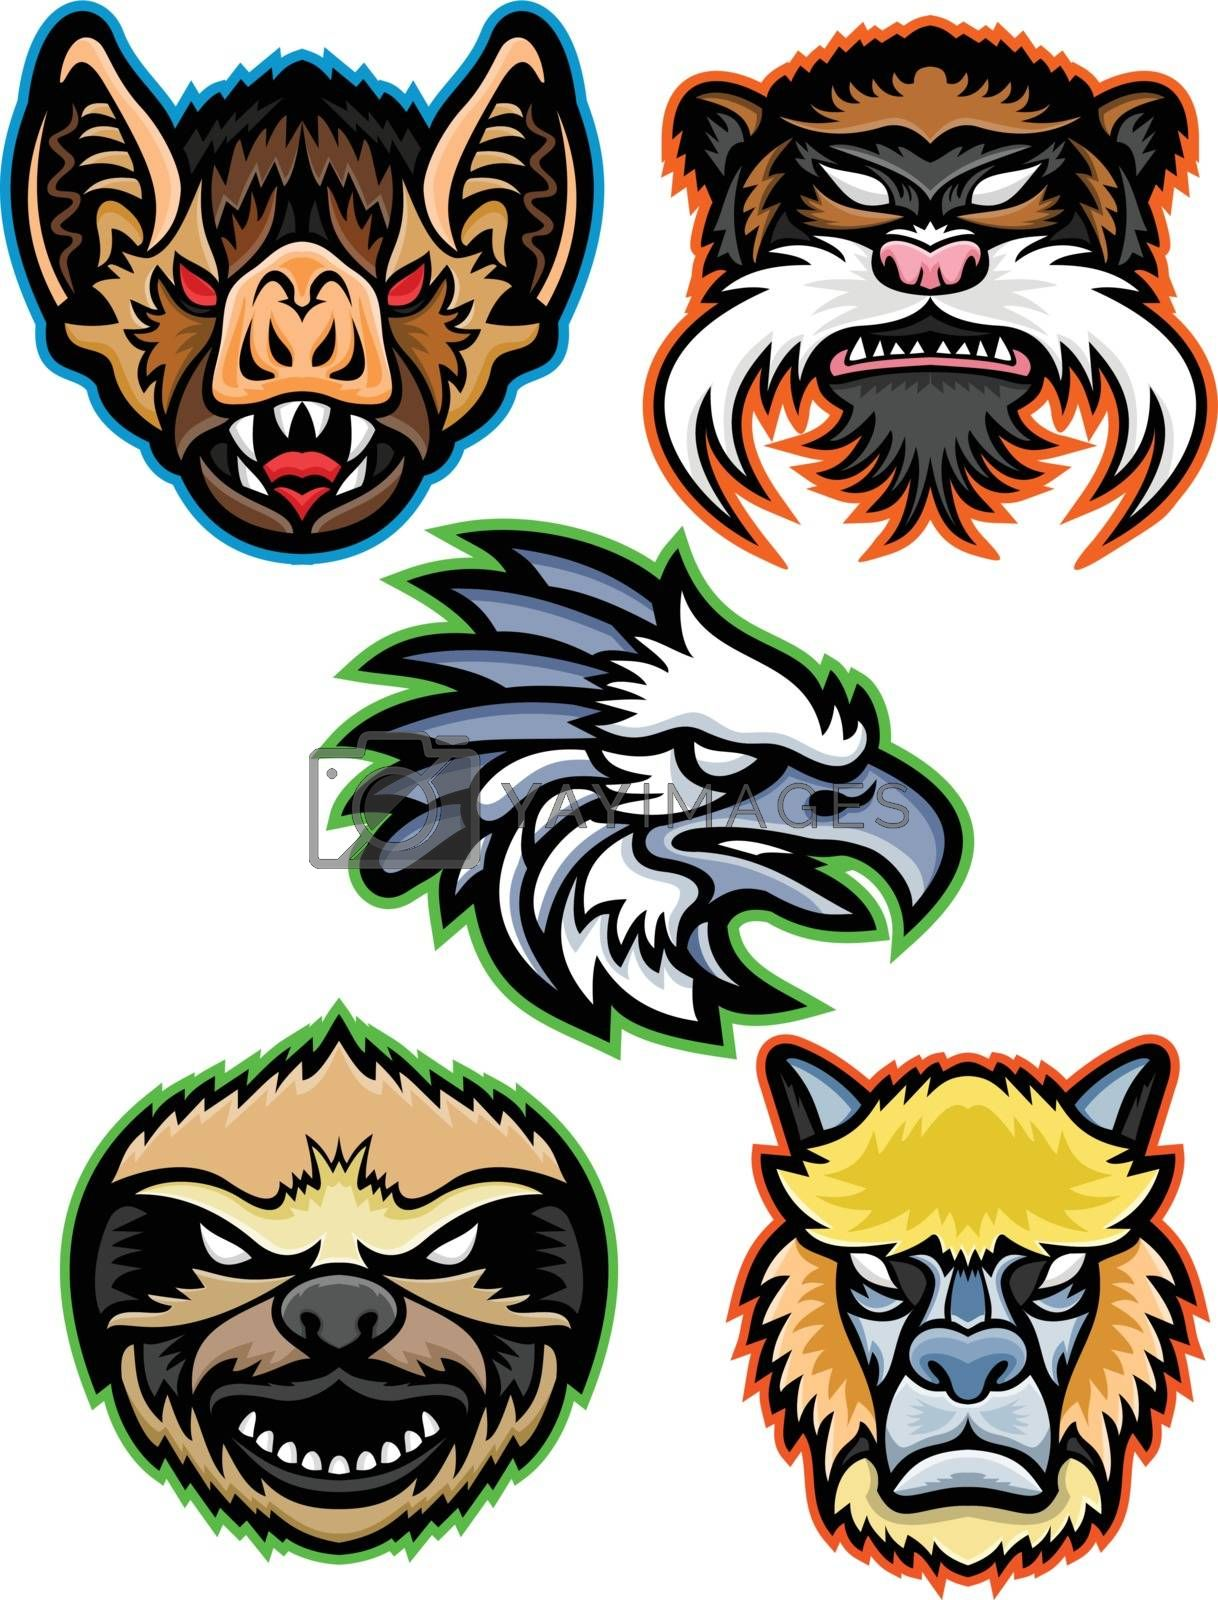 Mascot icon illustration set of heads of Amazon wildlife like the vampire bat, emperor tamarin monkey, harpy eagle, sloth and alpaca or llama viewed from  on isolated background in retro style.